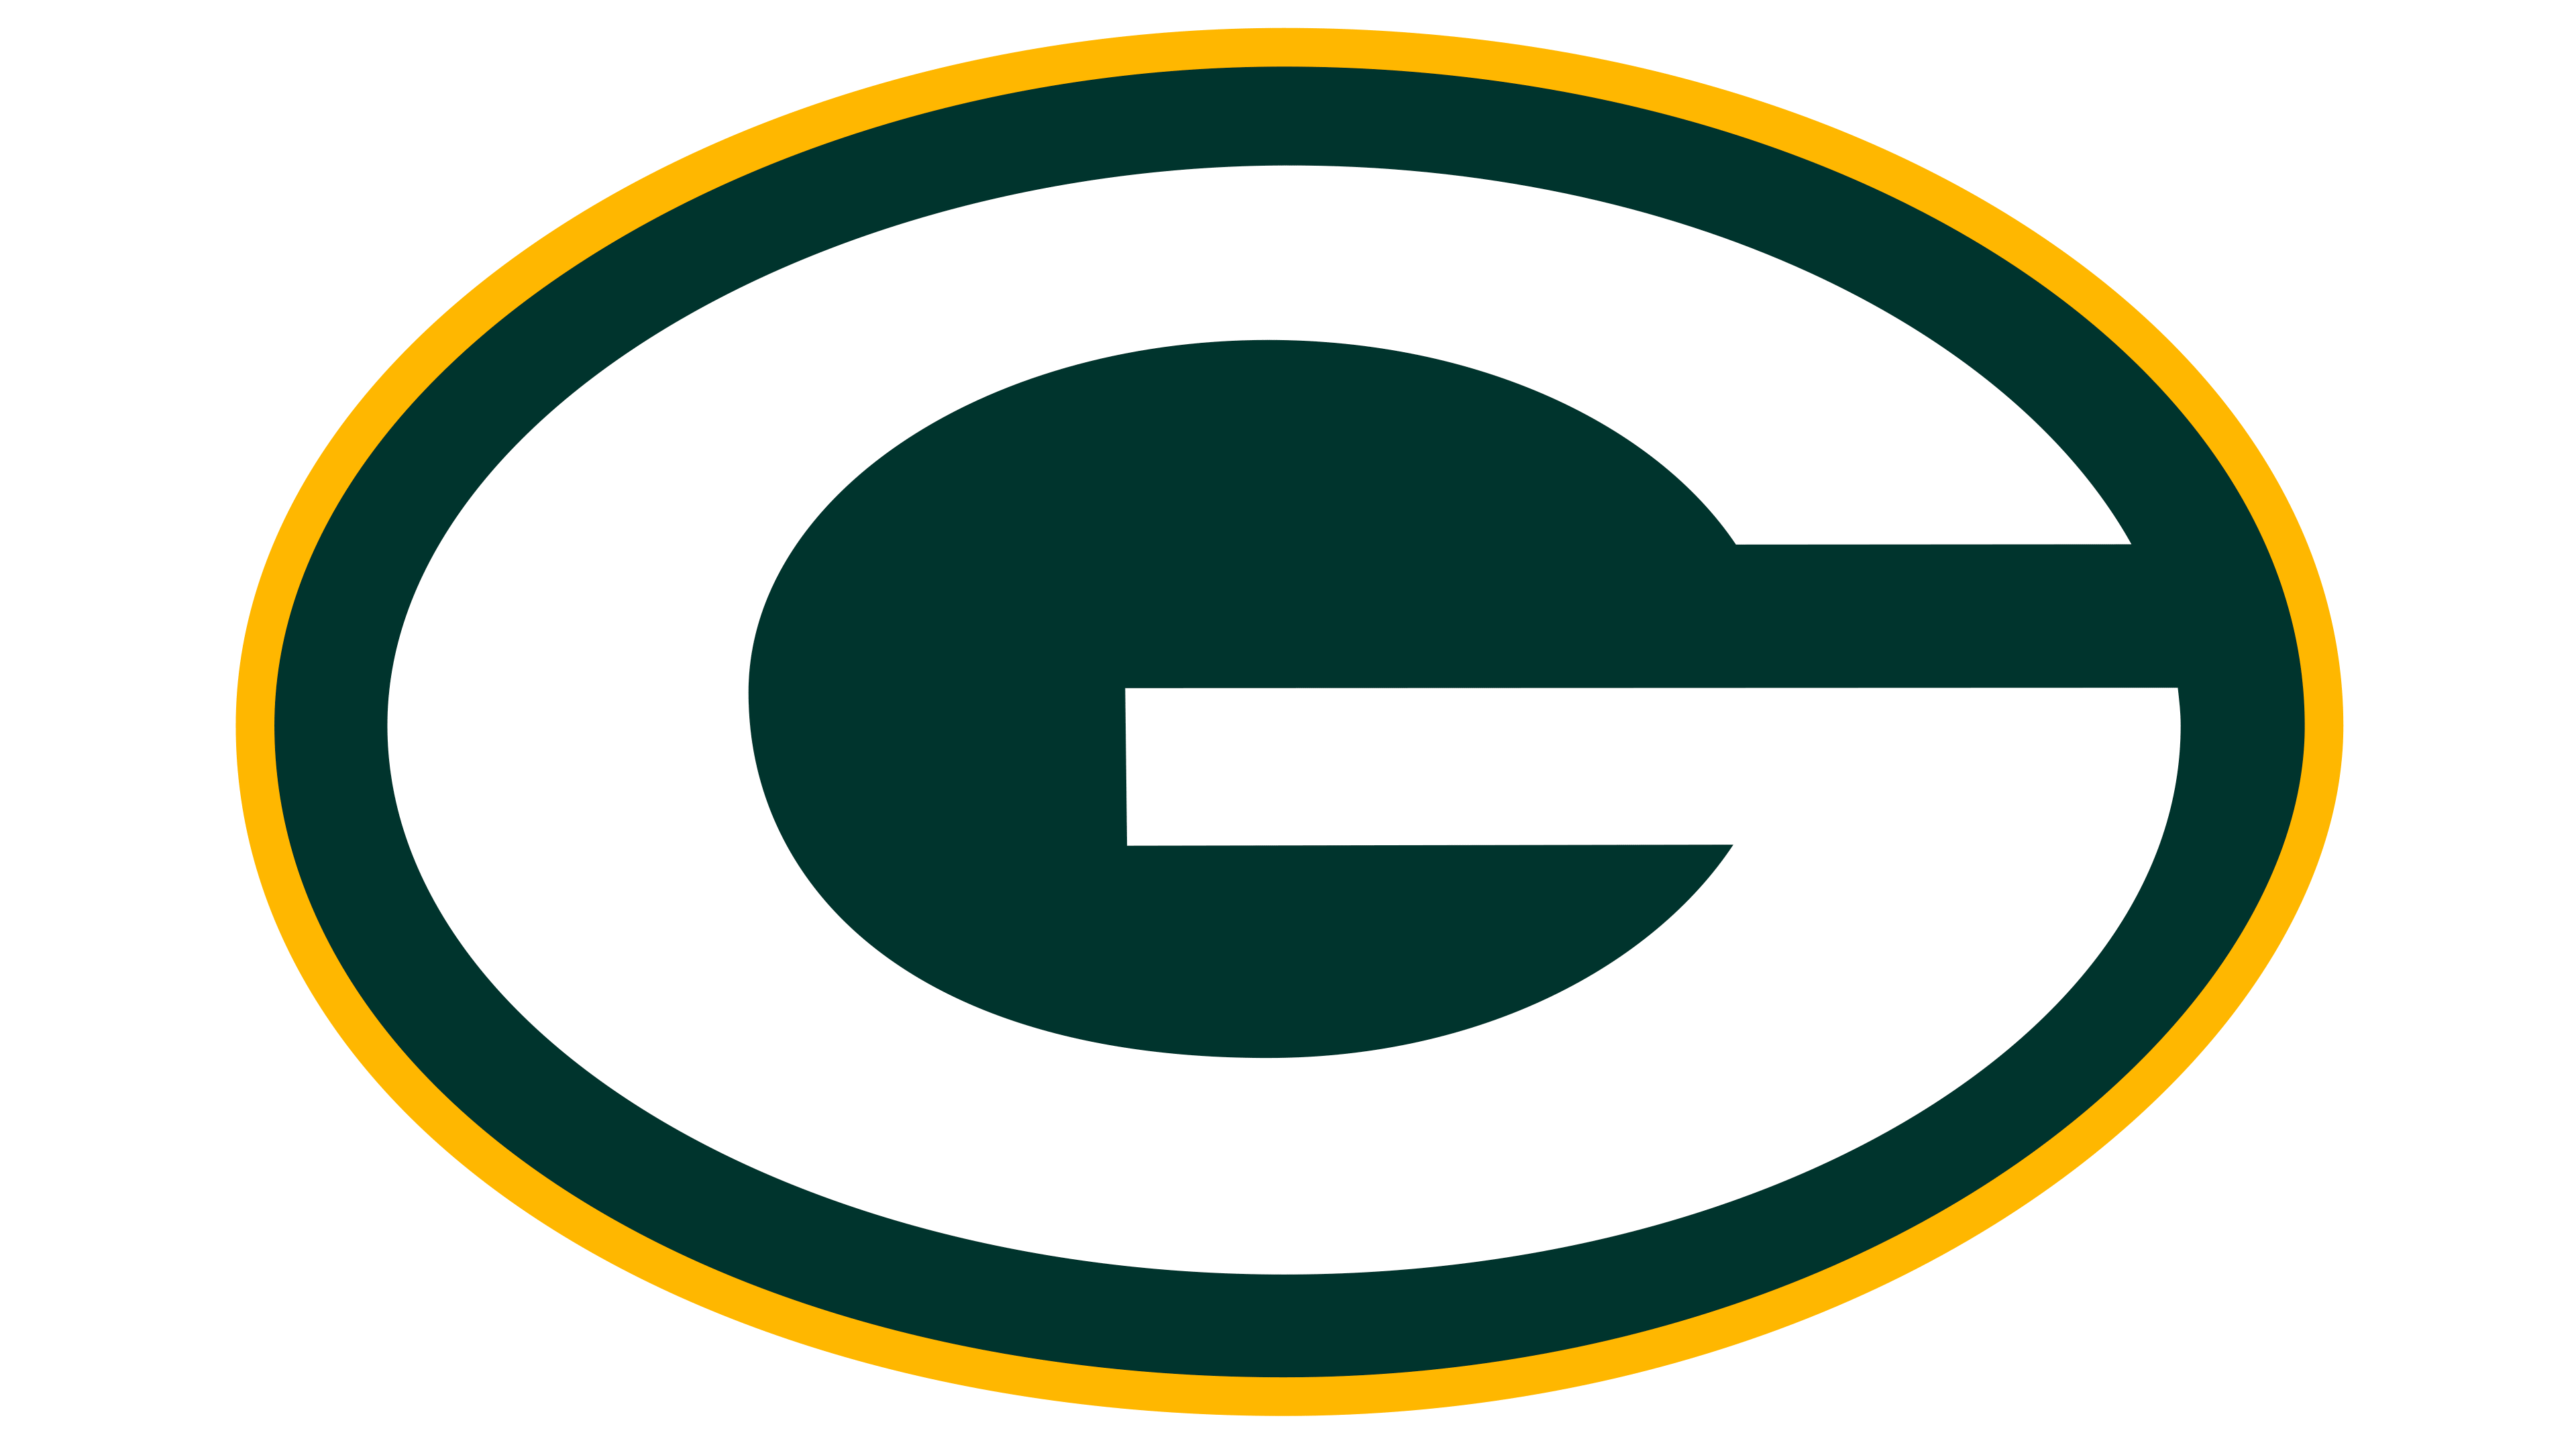 Green Bay Packers Logos.